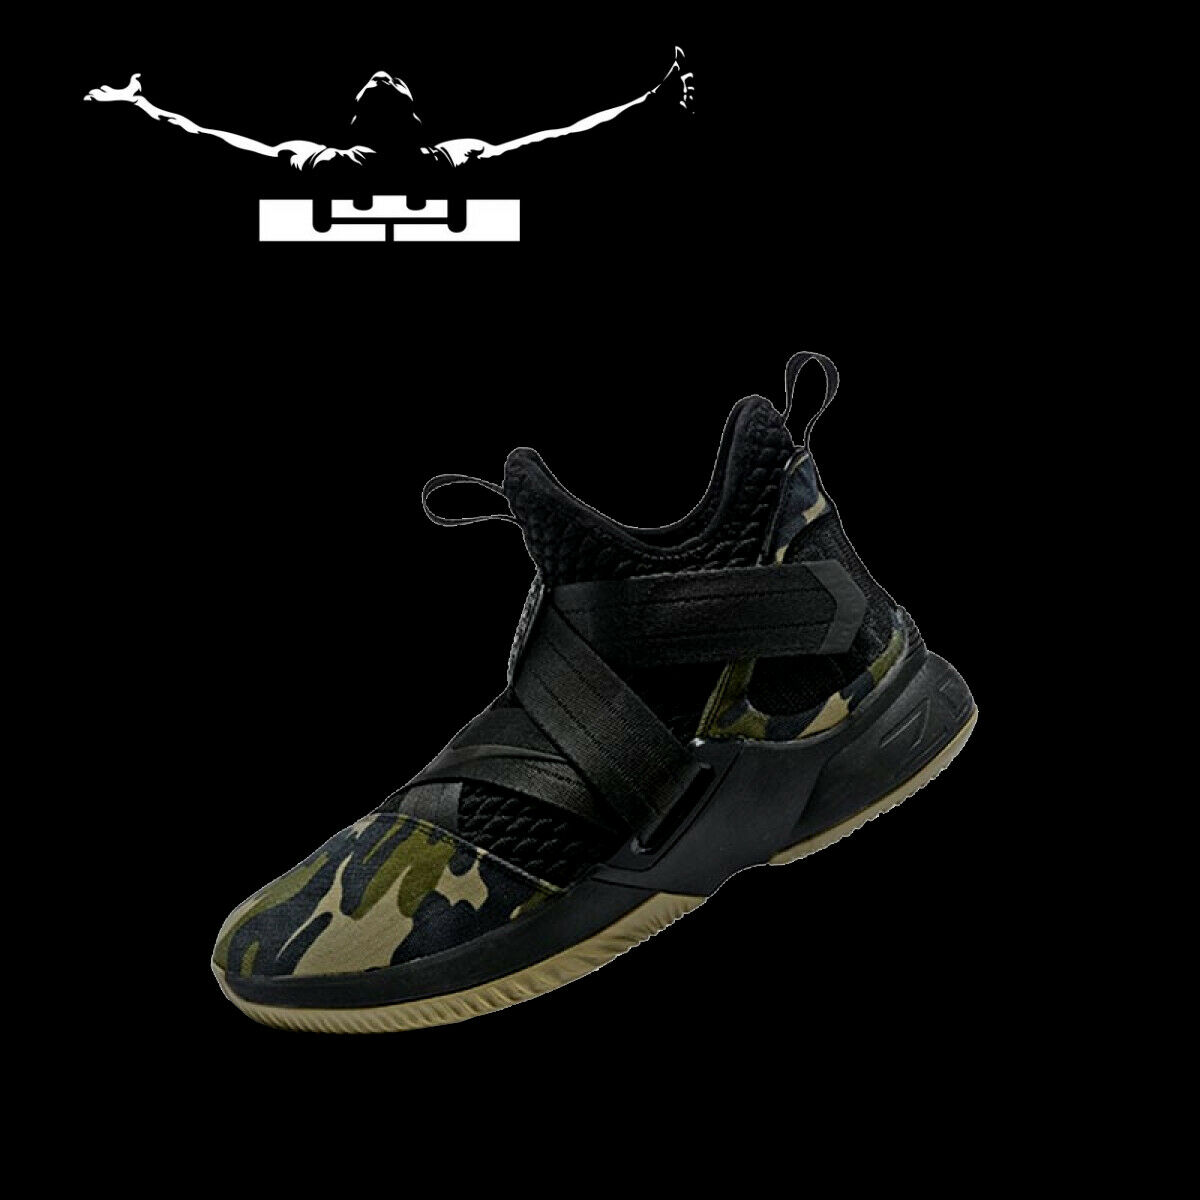 hommes NIKE LEBRON SOLDIER XII 12 TM  Camouflage  Baskets Chaussures armée AO4054-001 11.5